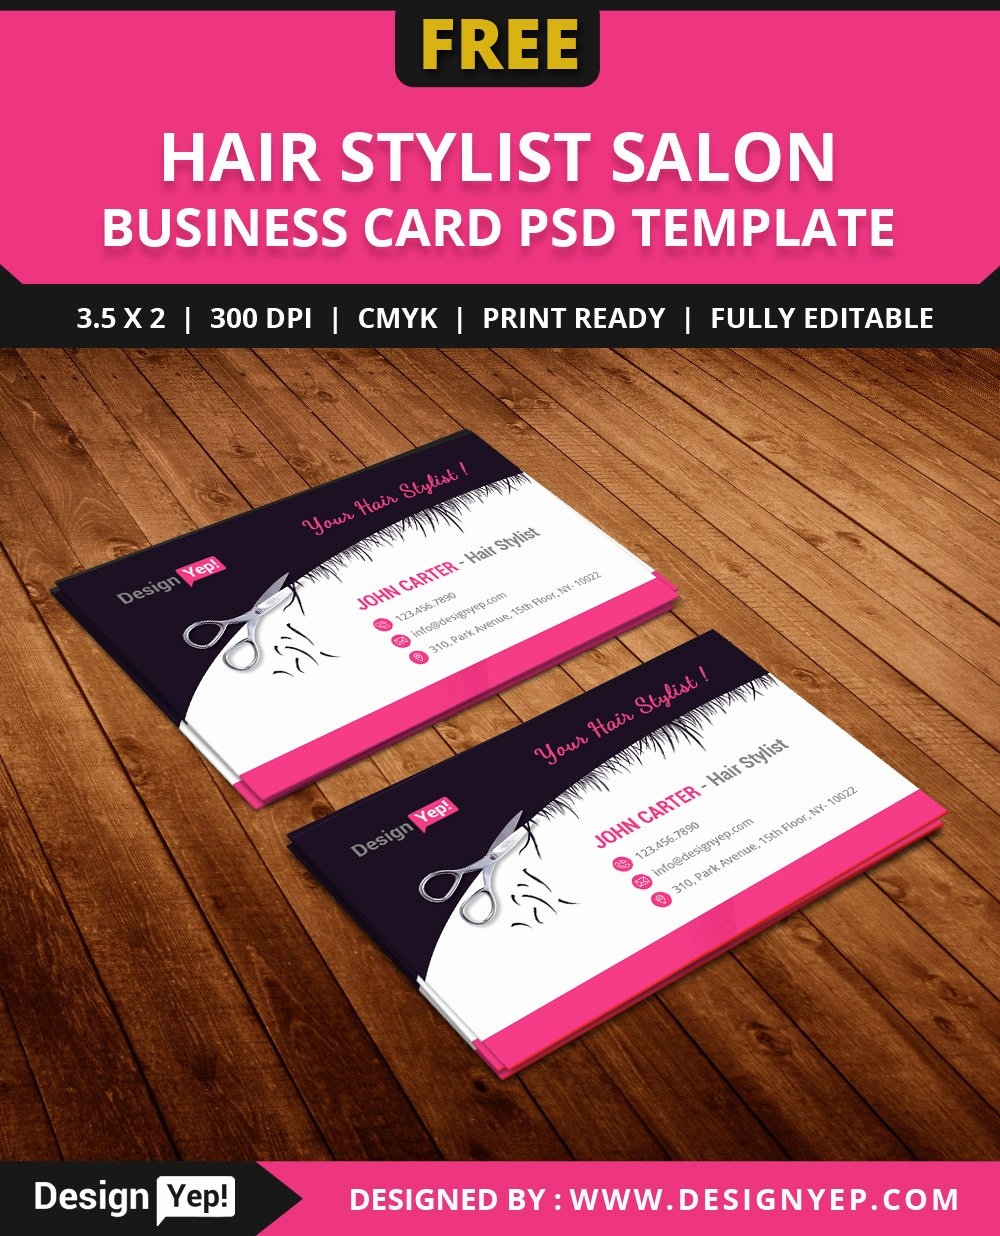 Hair Salon Business Card Luxury Free Hair Stylist Salon Business Card Template Psd On Behance